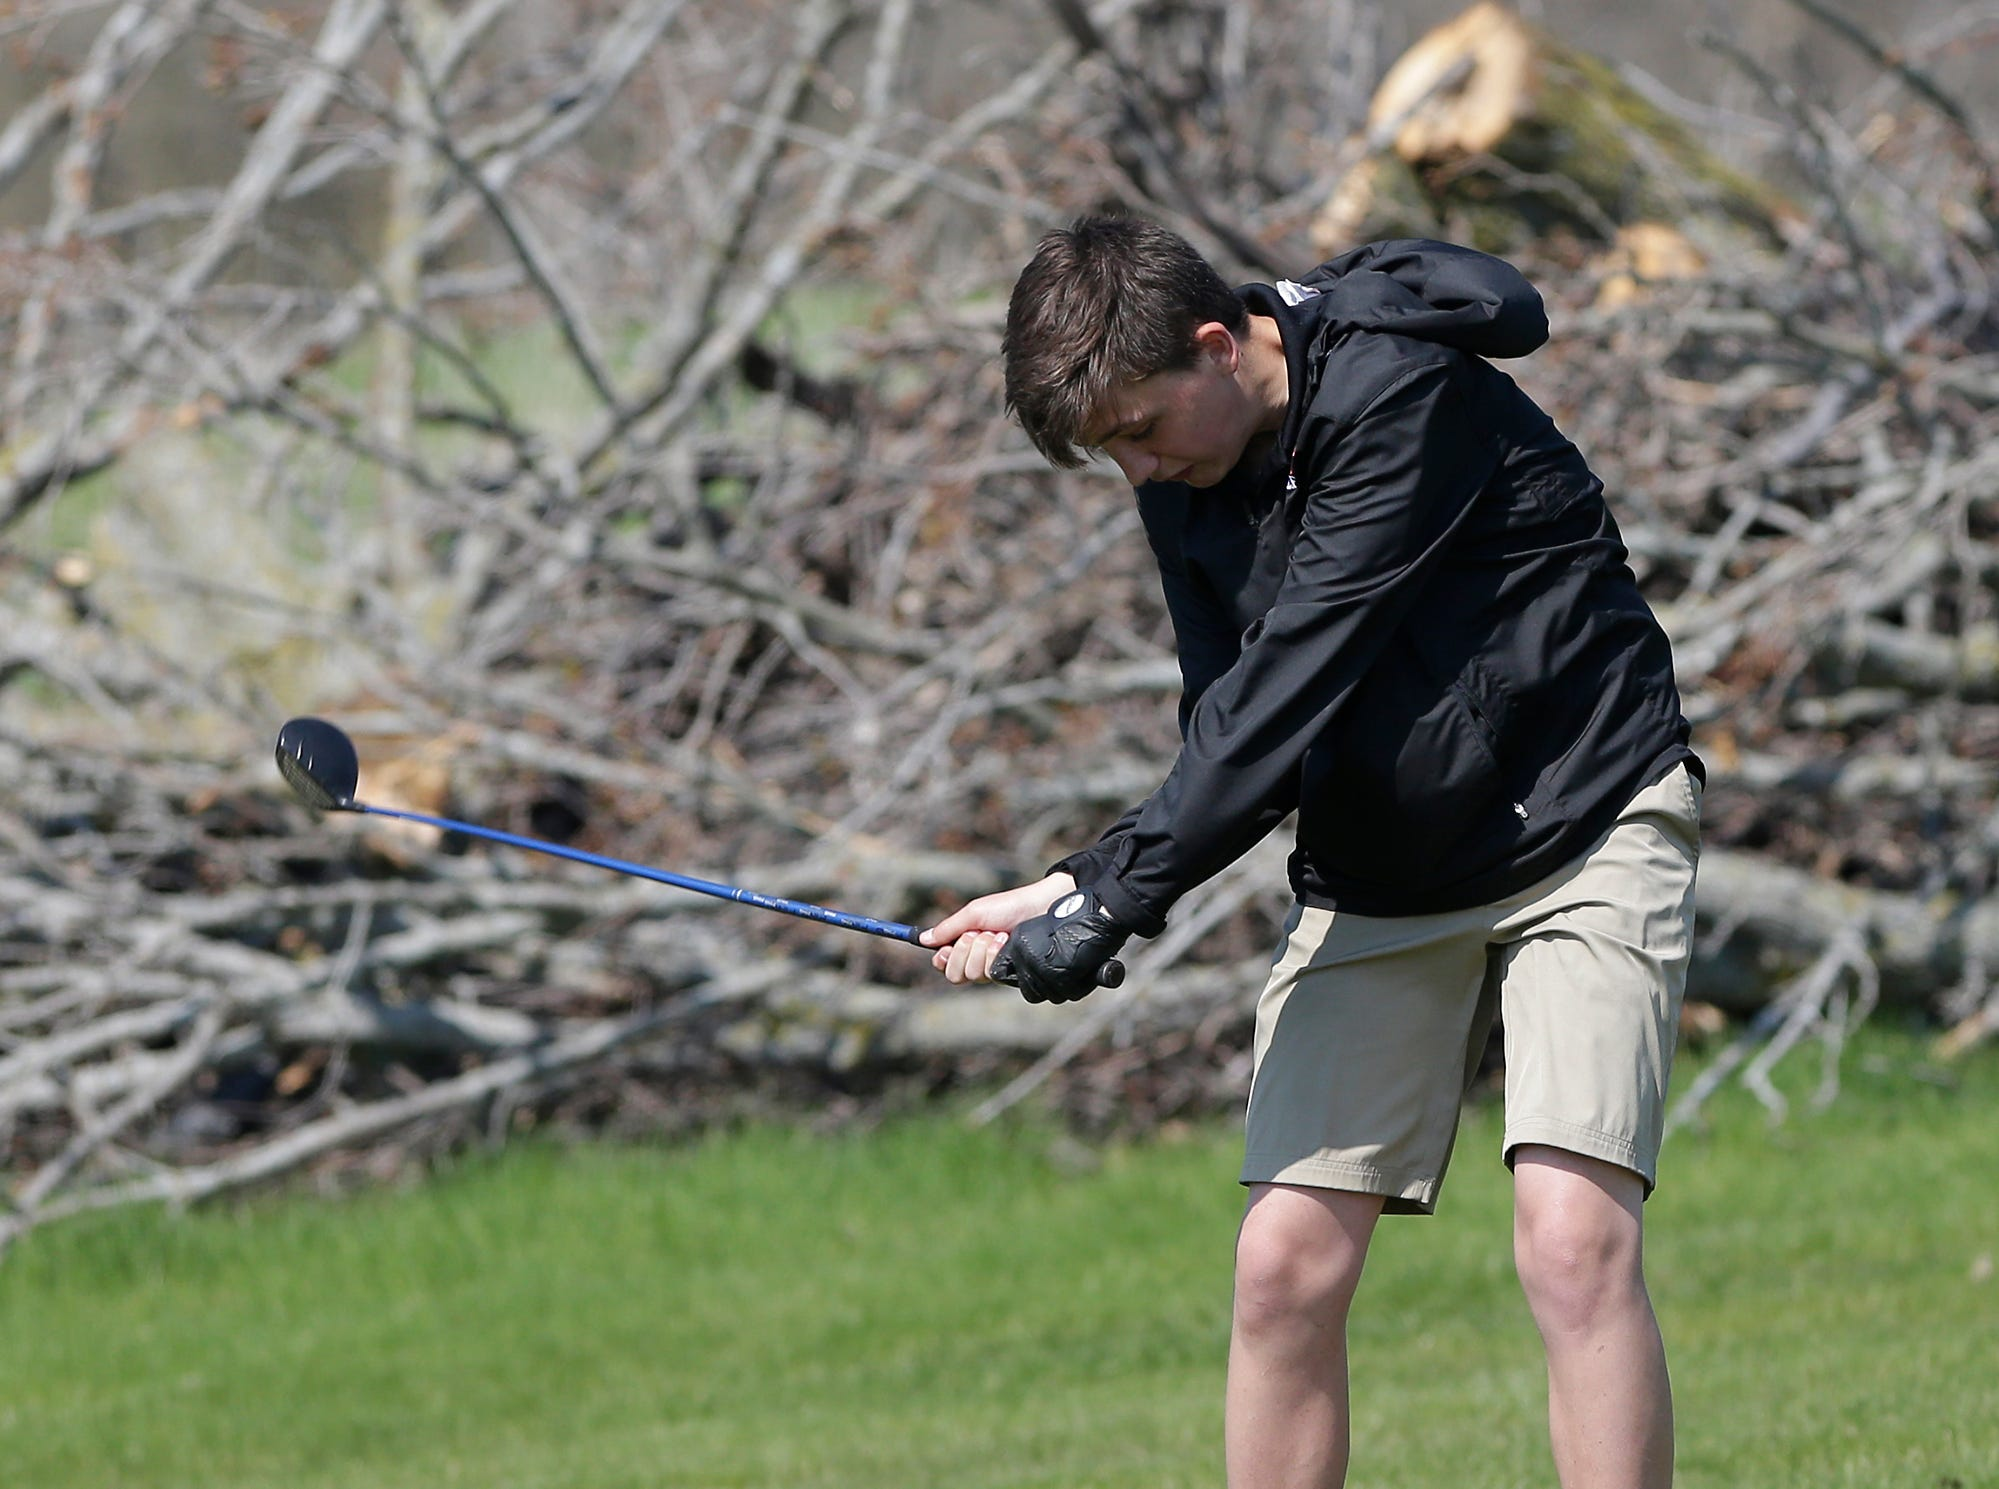 Lucas Burry of Appleton West High School competes in the Fond du Lac High School golf invite Saturday, May 4, 2019 at Rolling Meadows Golf Course in Fond du Lac, Wis. Doug Raflik/USA TODAY NETWORK-Wisconsin